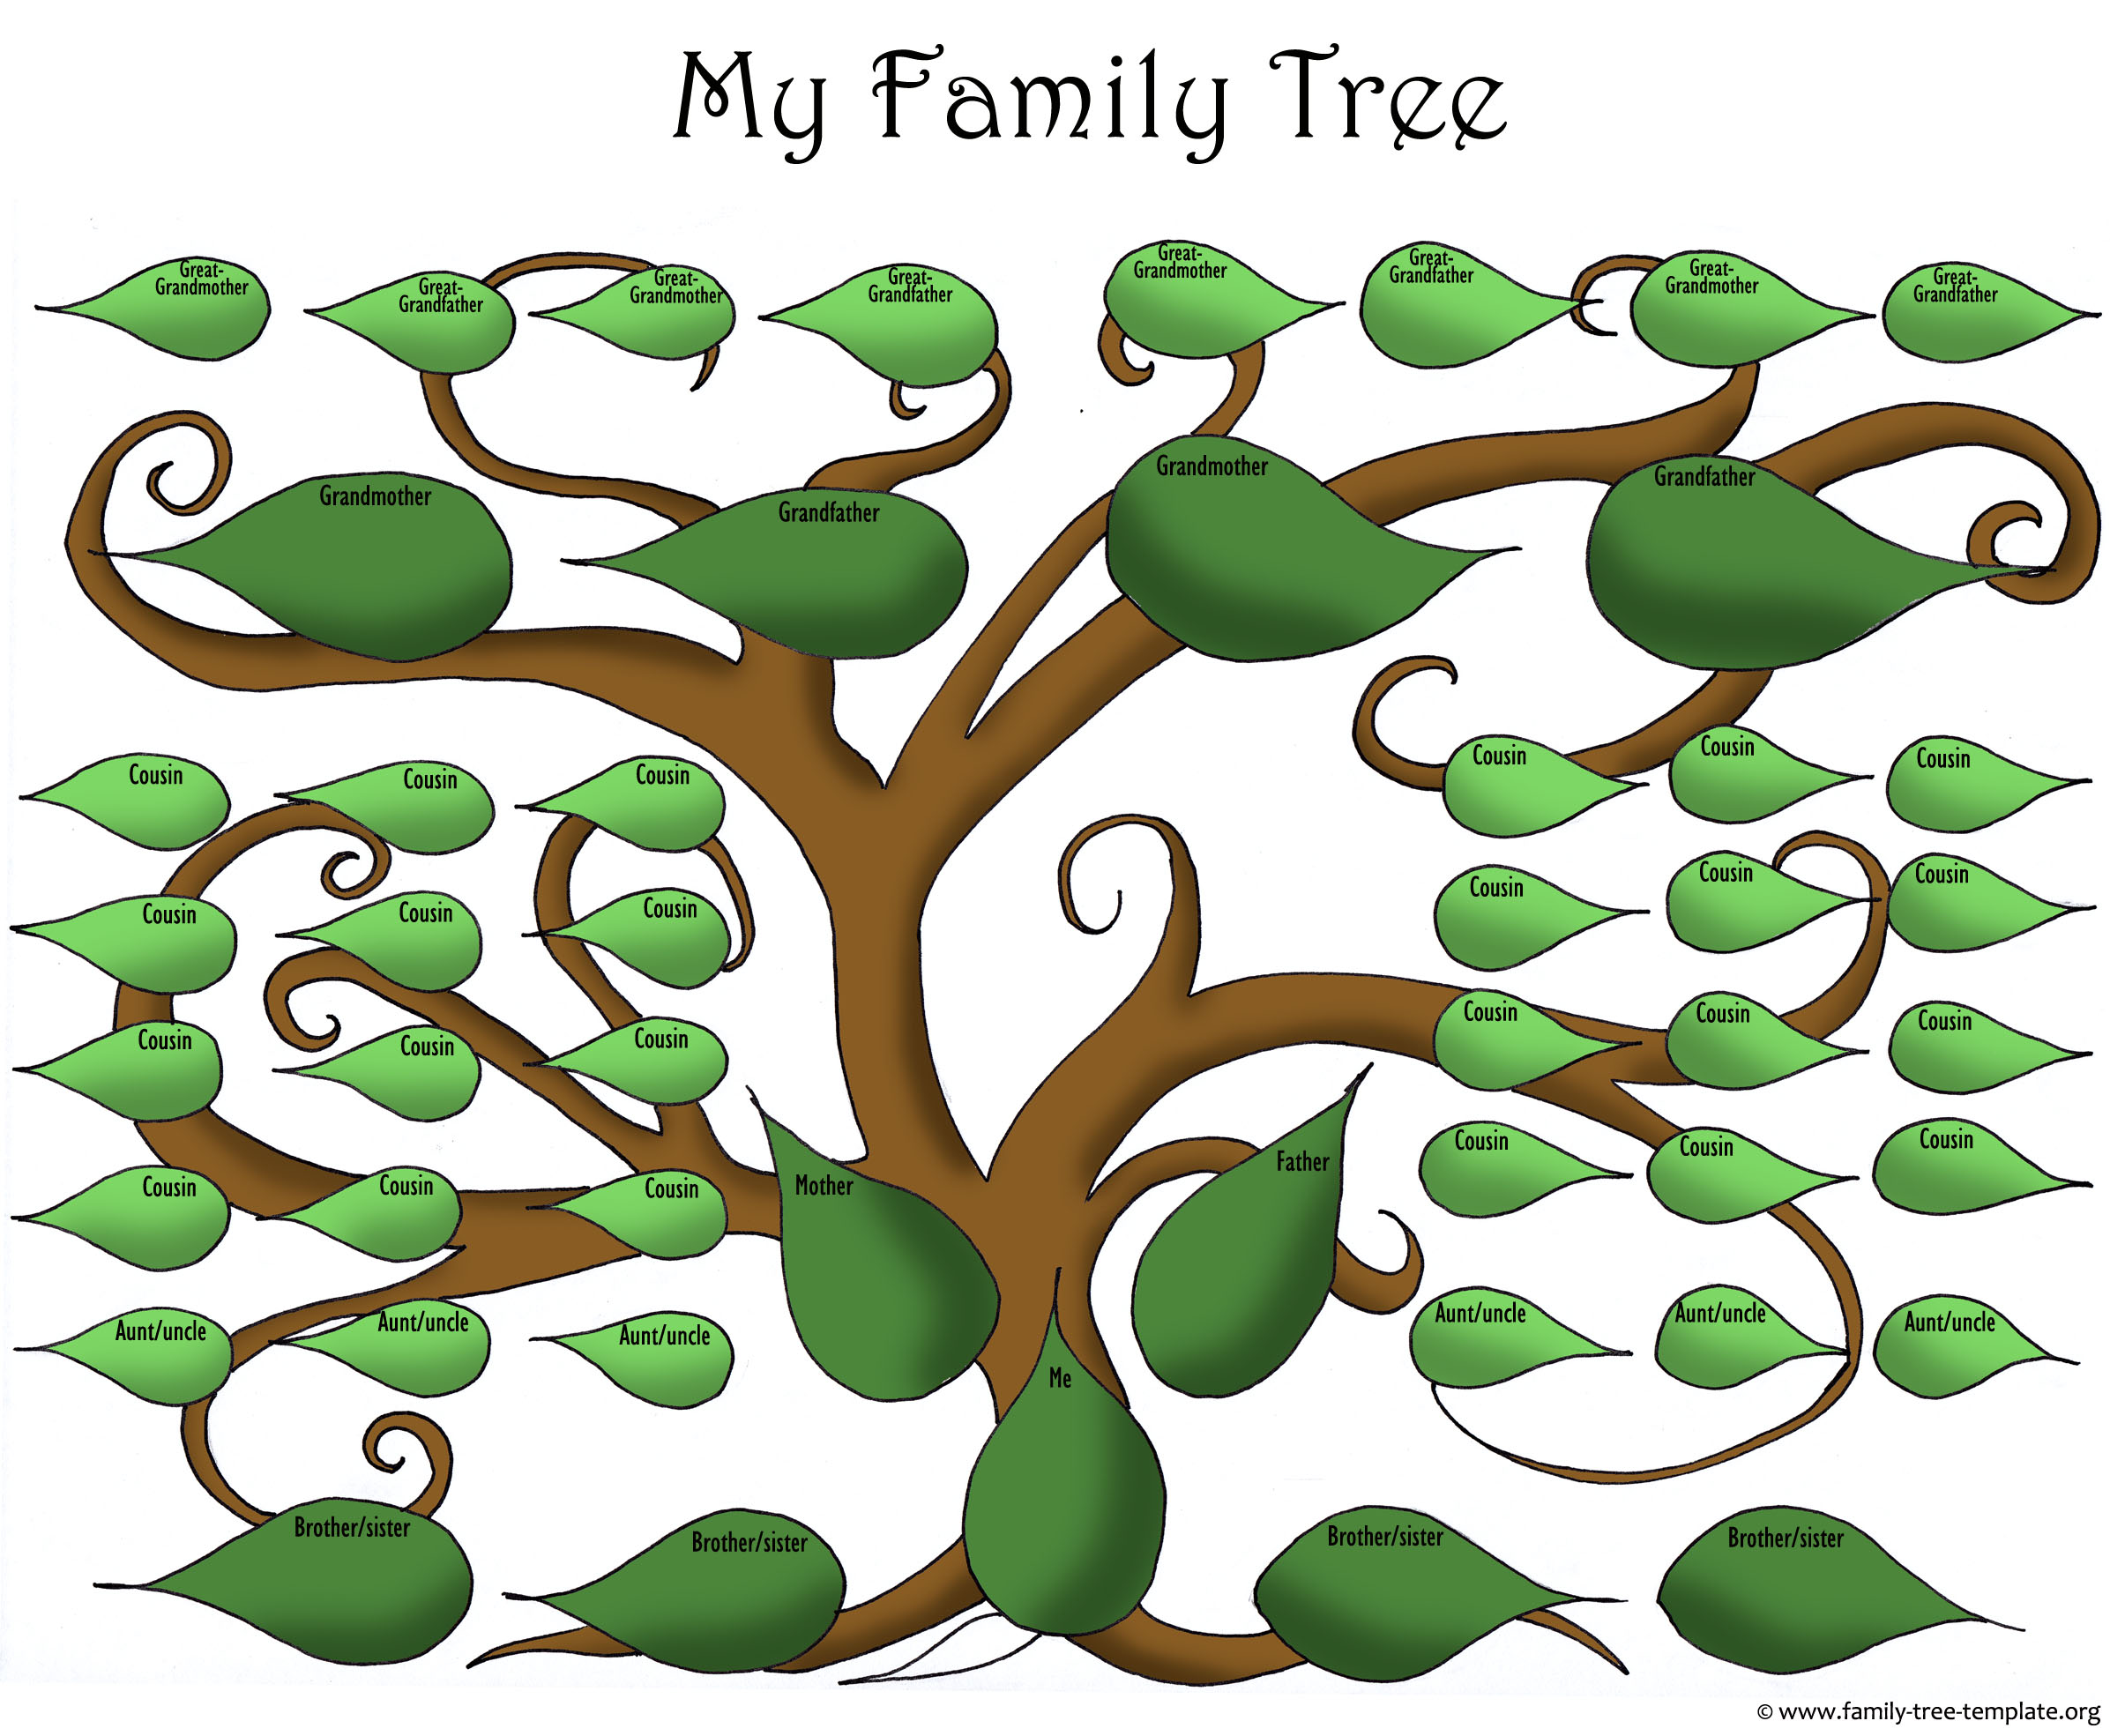 Artistic blank printable family tree template for the big family with lots of kids.